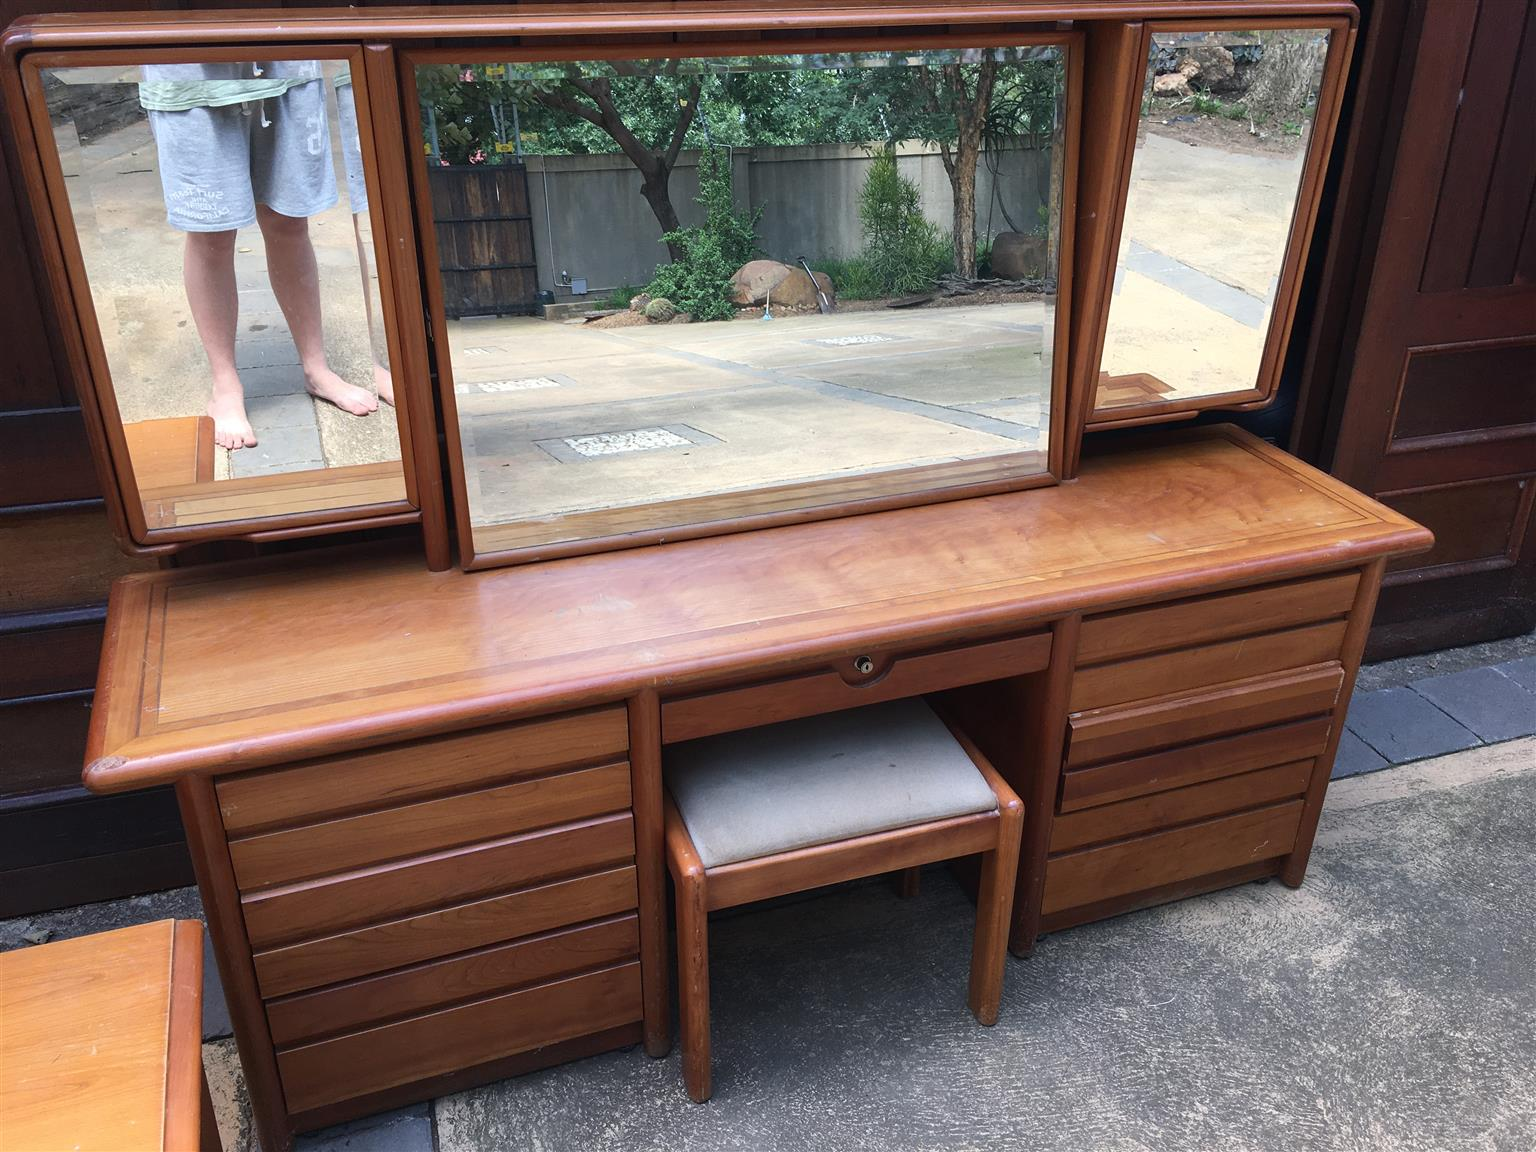 Cherry dressing table with 2 side drawers and a heardboard all for 3000